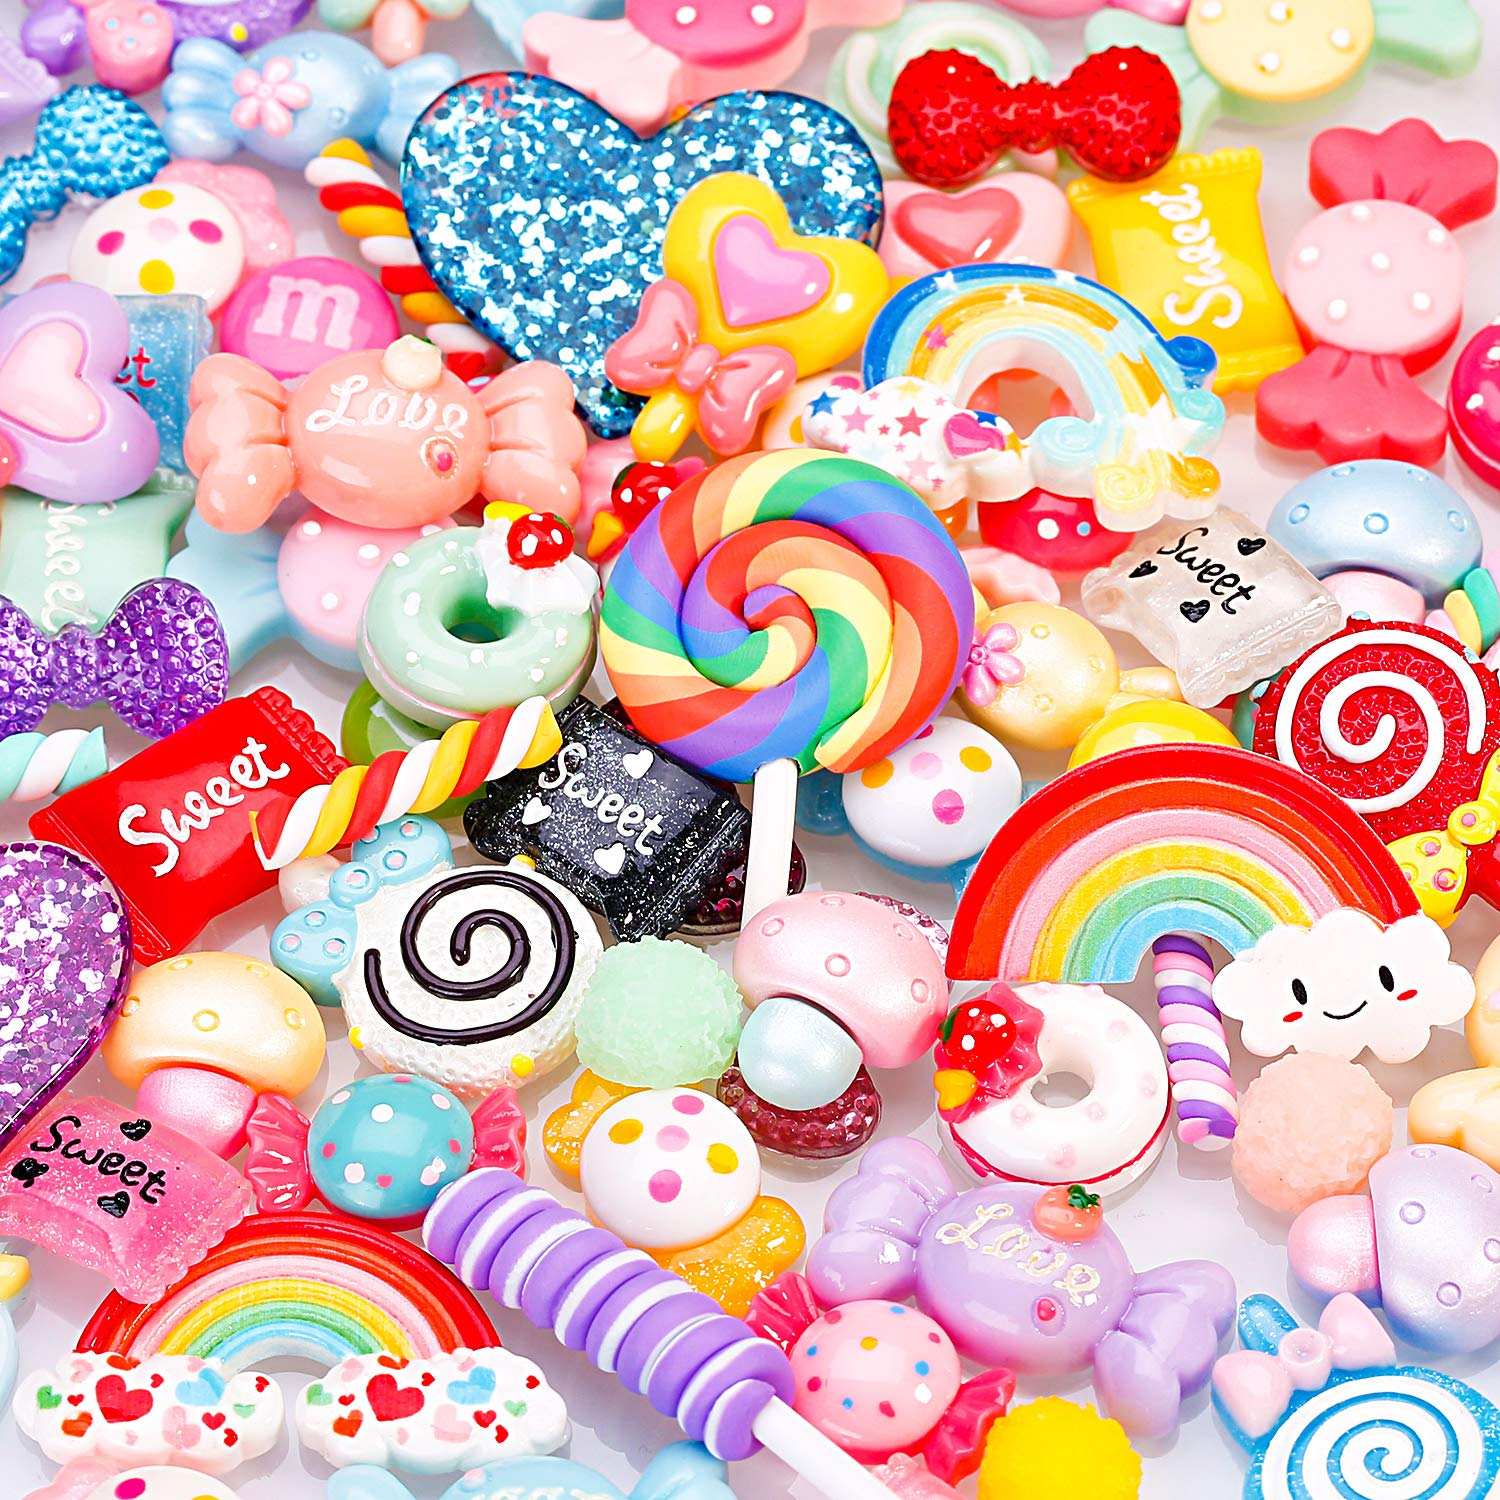 100Pcs Charms For Slime Assorted Fruits Candy Sweets Flat Slime Charms Cute Set